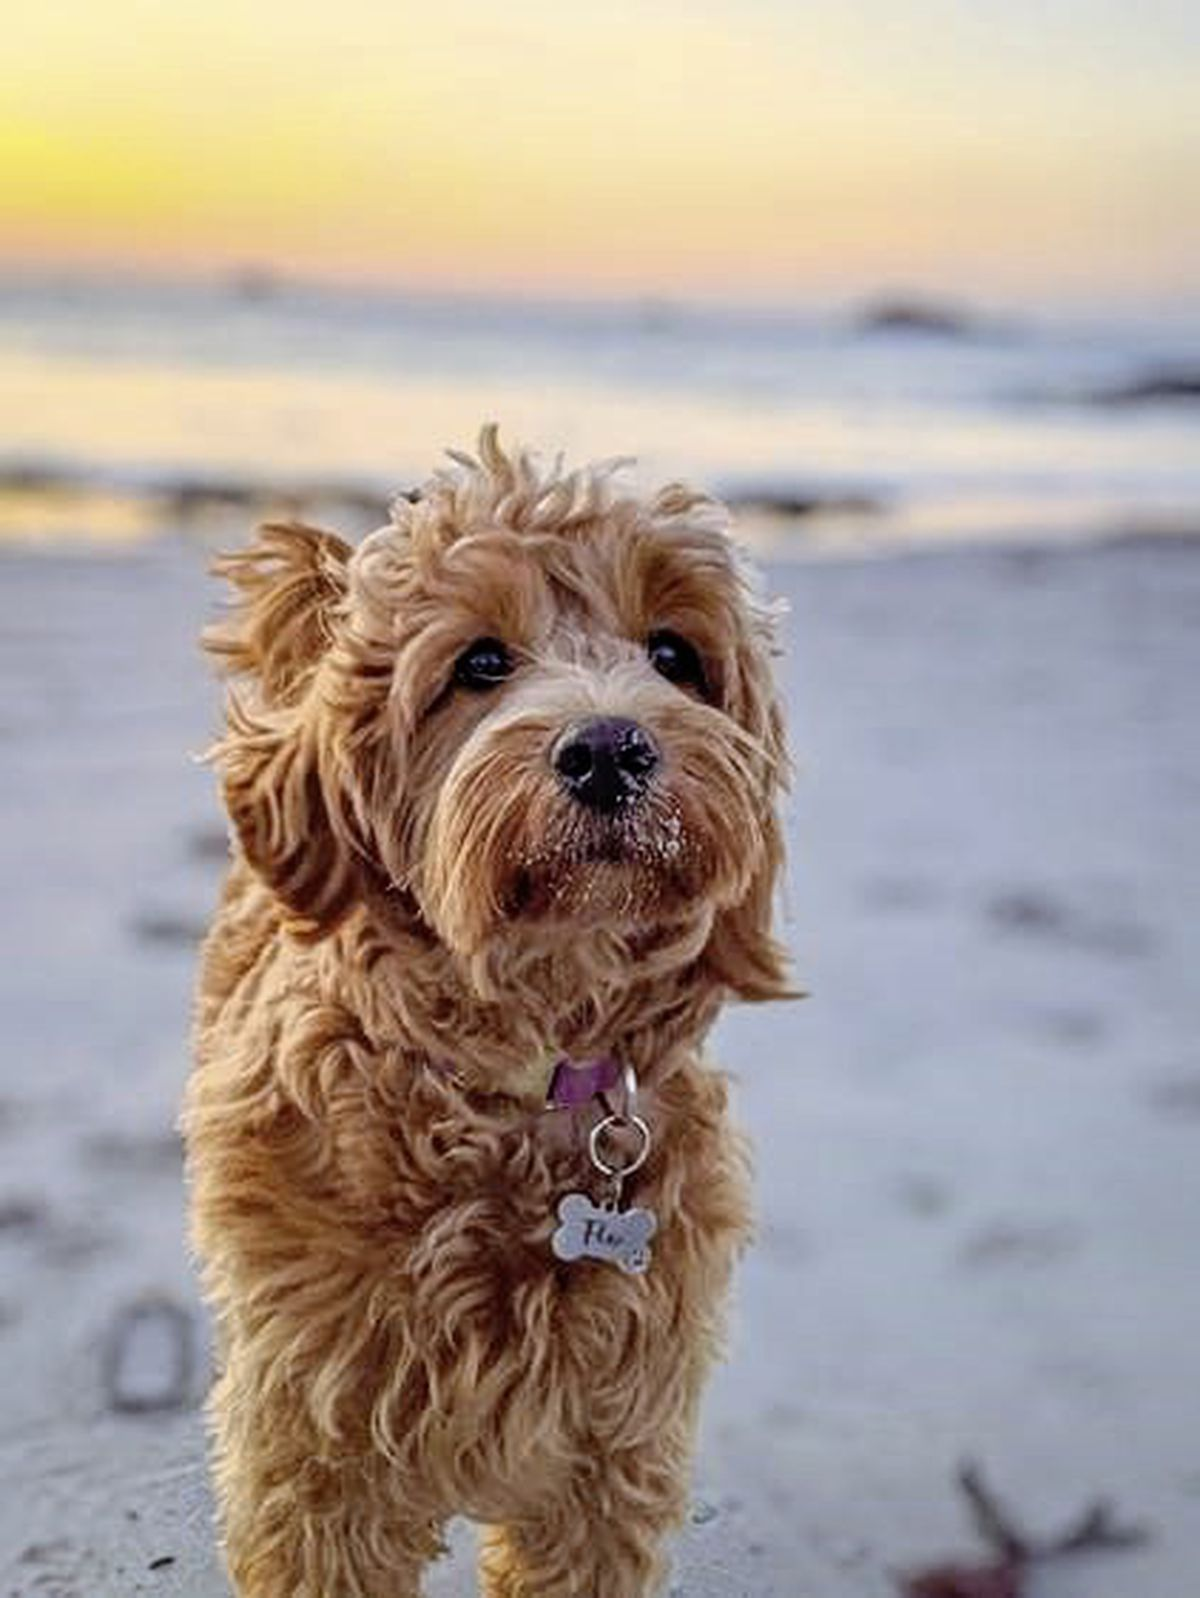 Flo the Goldendoodle owned by Richard Cranch won a 'hotly contested' competition to be the new canine face of GY1 for 2021. Image by Richard Cranch. (29102786)